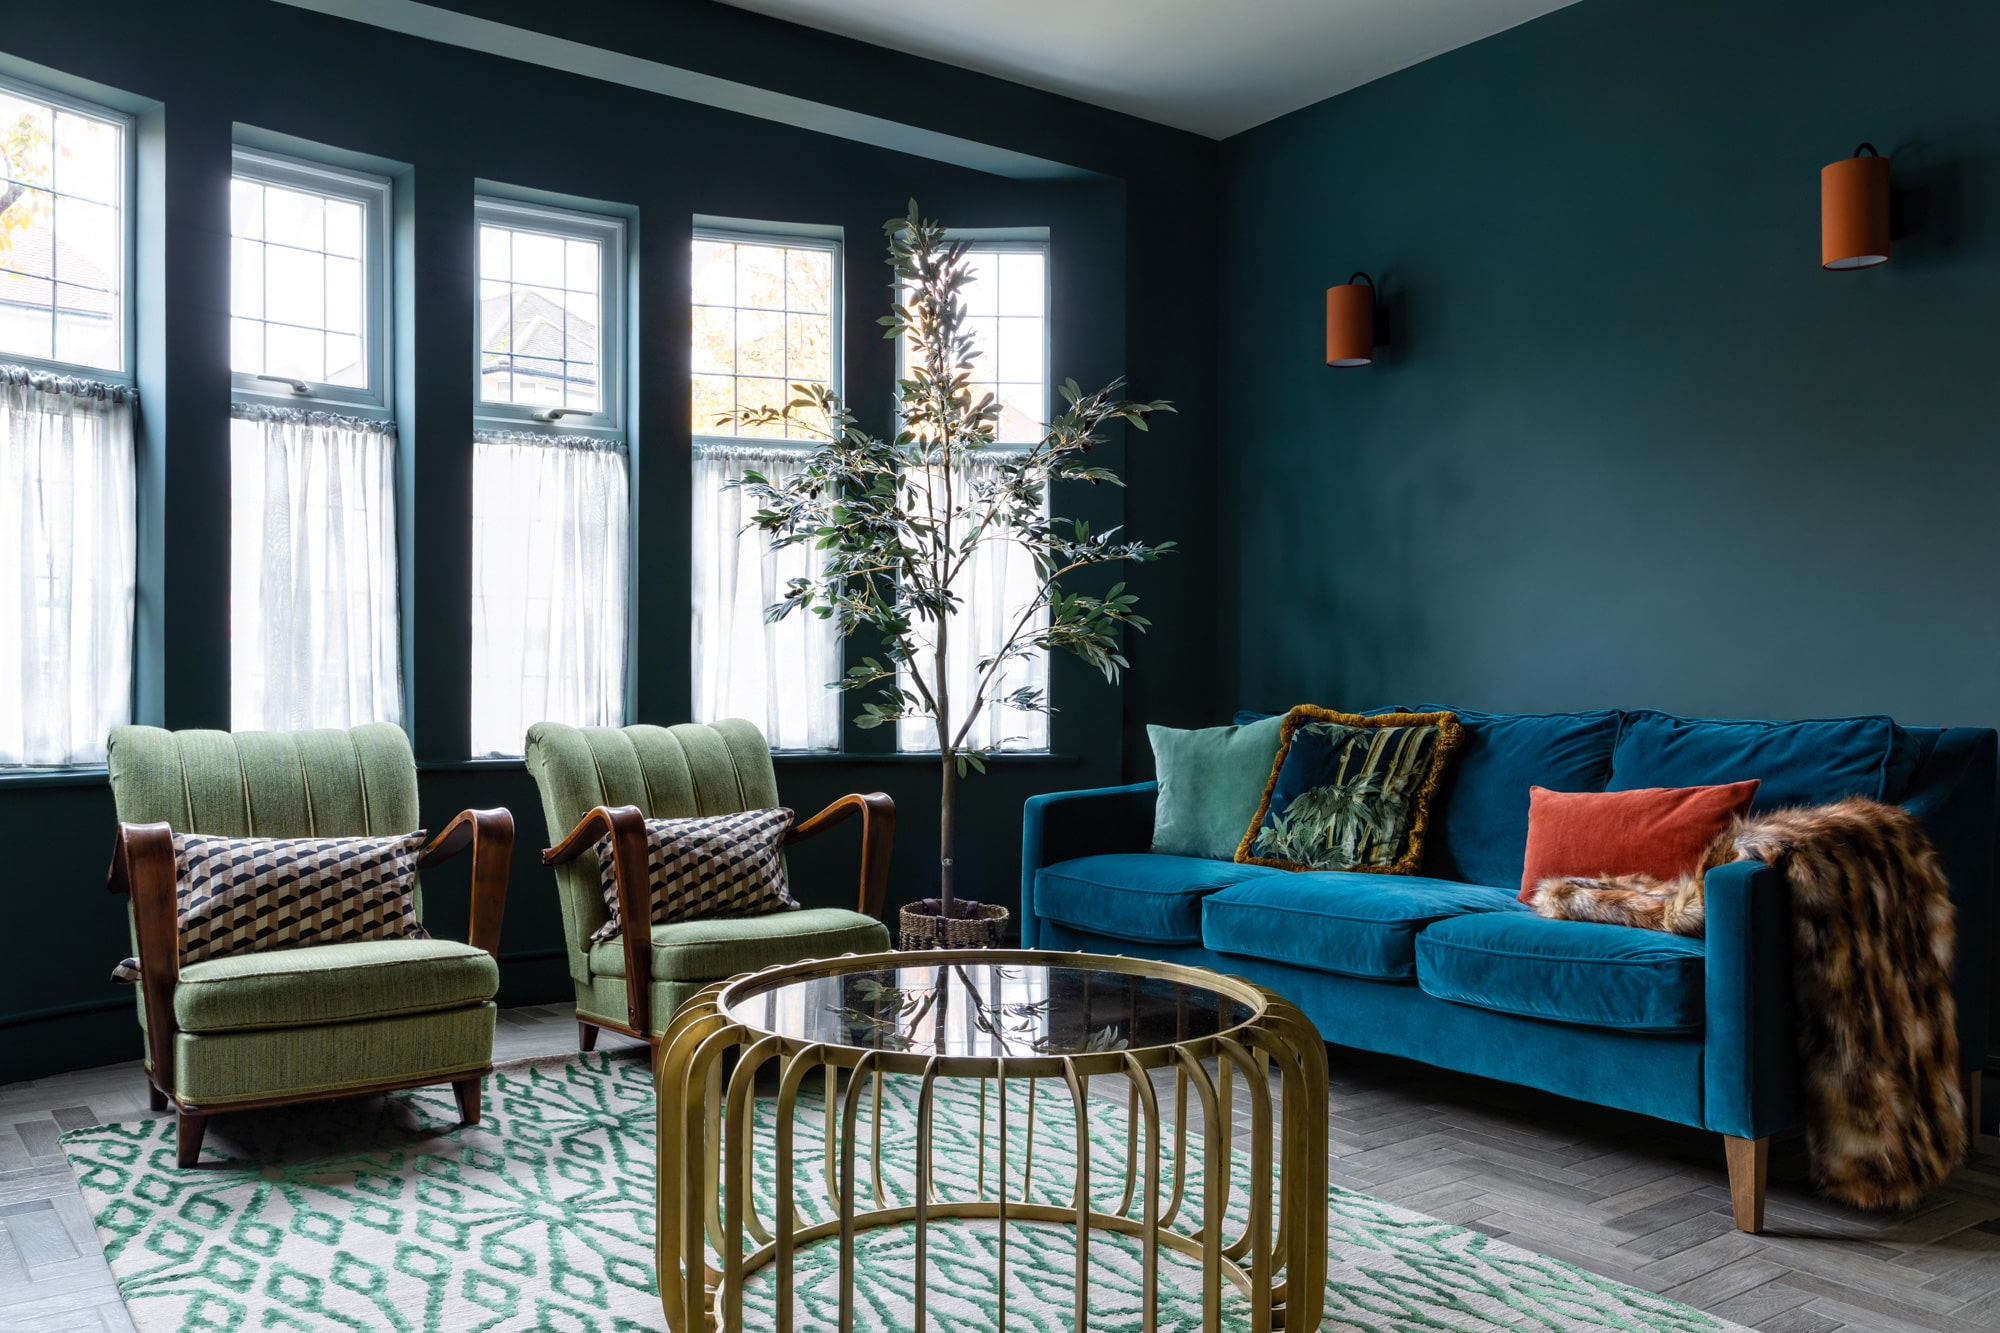 An overview interior design shot: a living room with dark blue walls, teal sofa, two green armchairs and a gold metal coffee table with a glass top